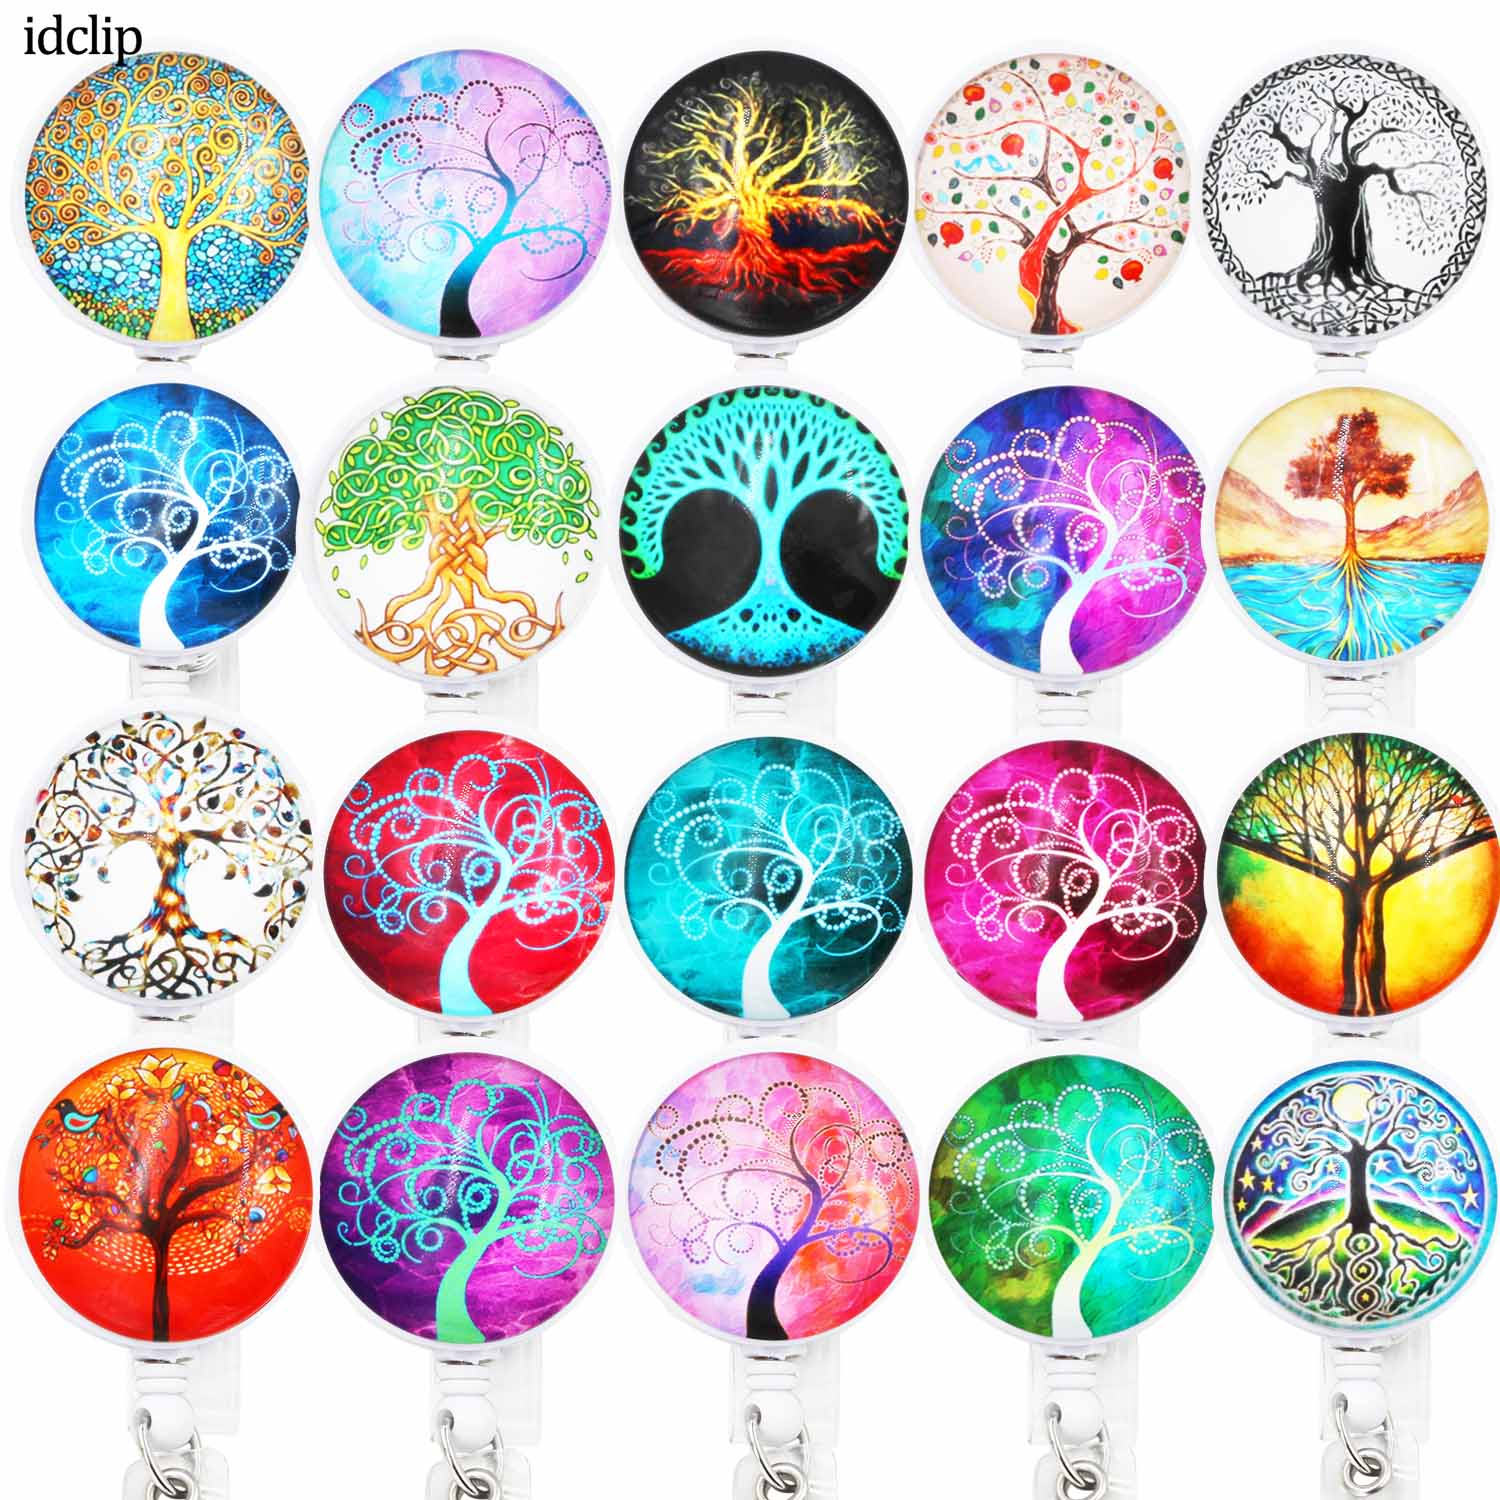 Idclip 1PC ID Retractable Badge Holder With Alligator Clip Life Tree Retractable Cord ID Badge Reel 24 Inch